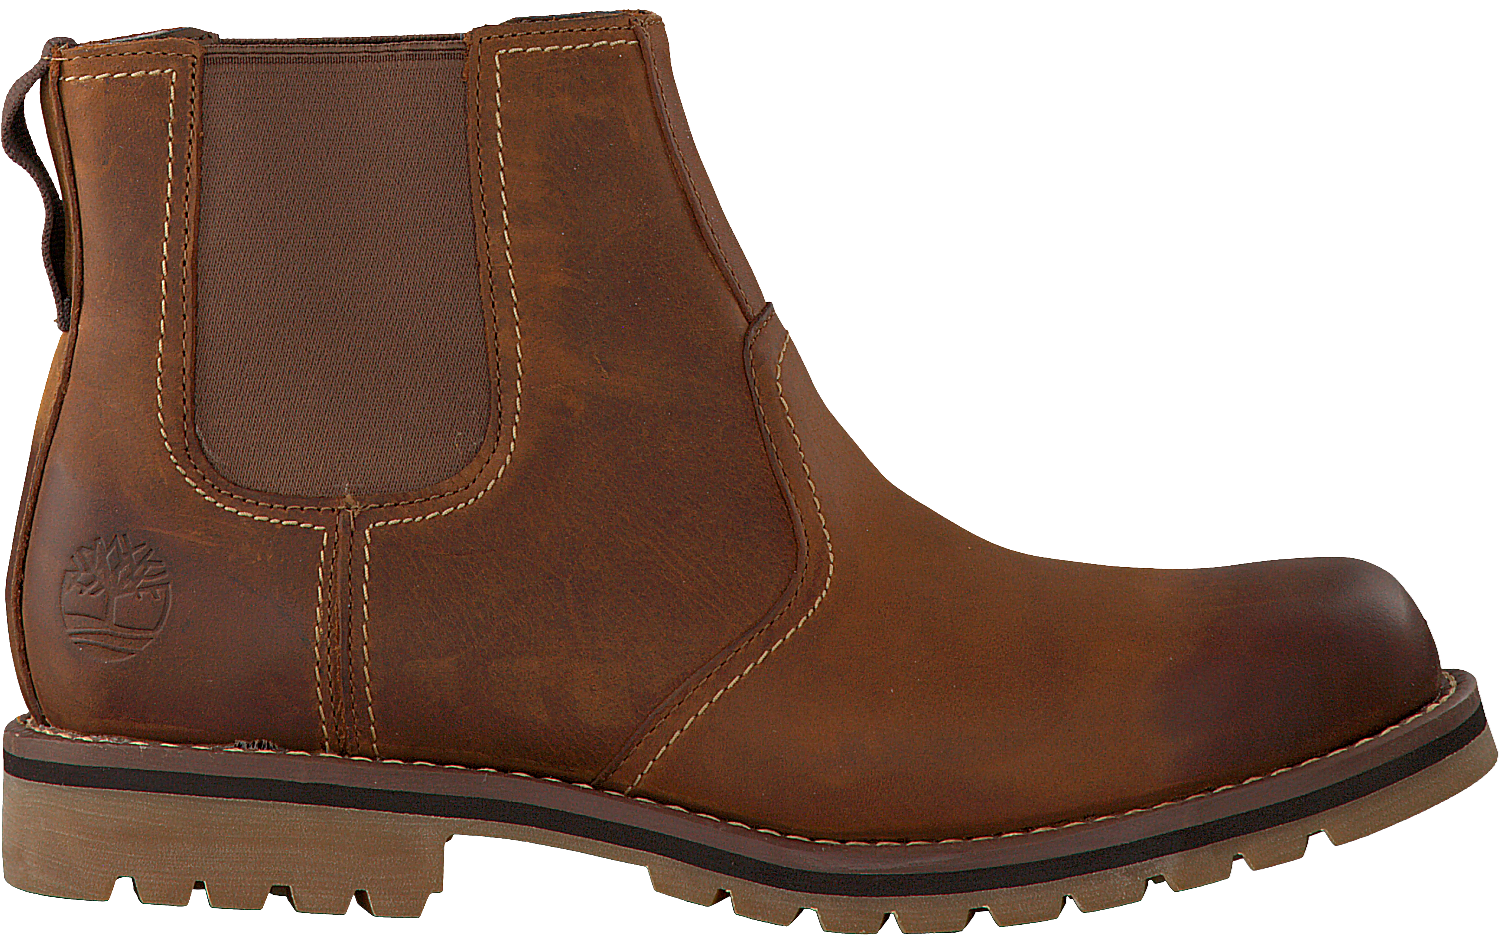 Chaussures Timberland Brun Pour Les Hommes 9w0uAL5VIn